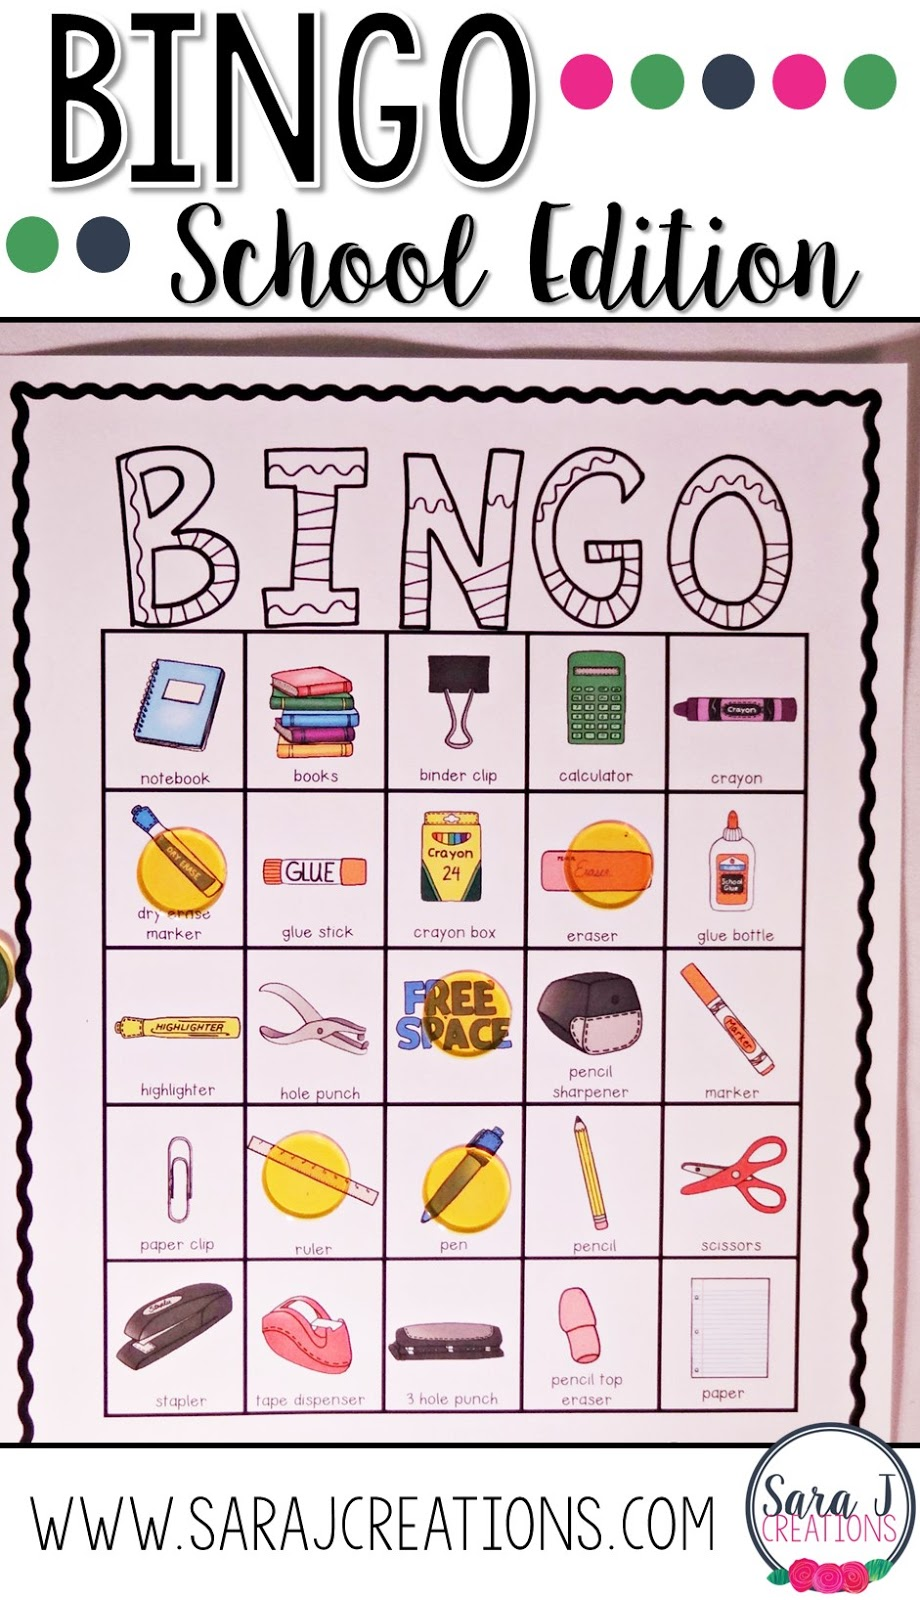 Back to school bingo is a perfect activity for the first week of school. A great way to break the ice and get familiar with common school supplies and where they are located in the classroom.